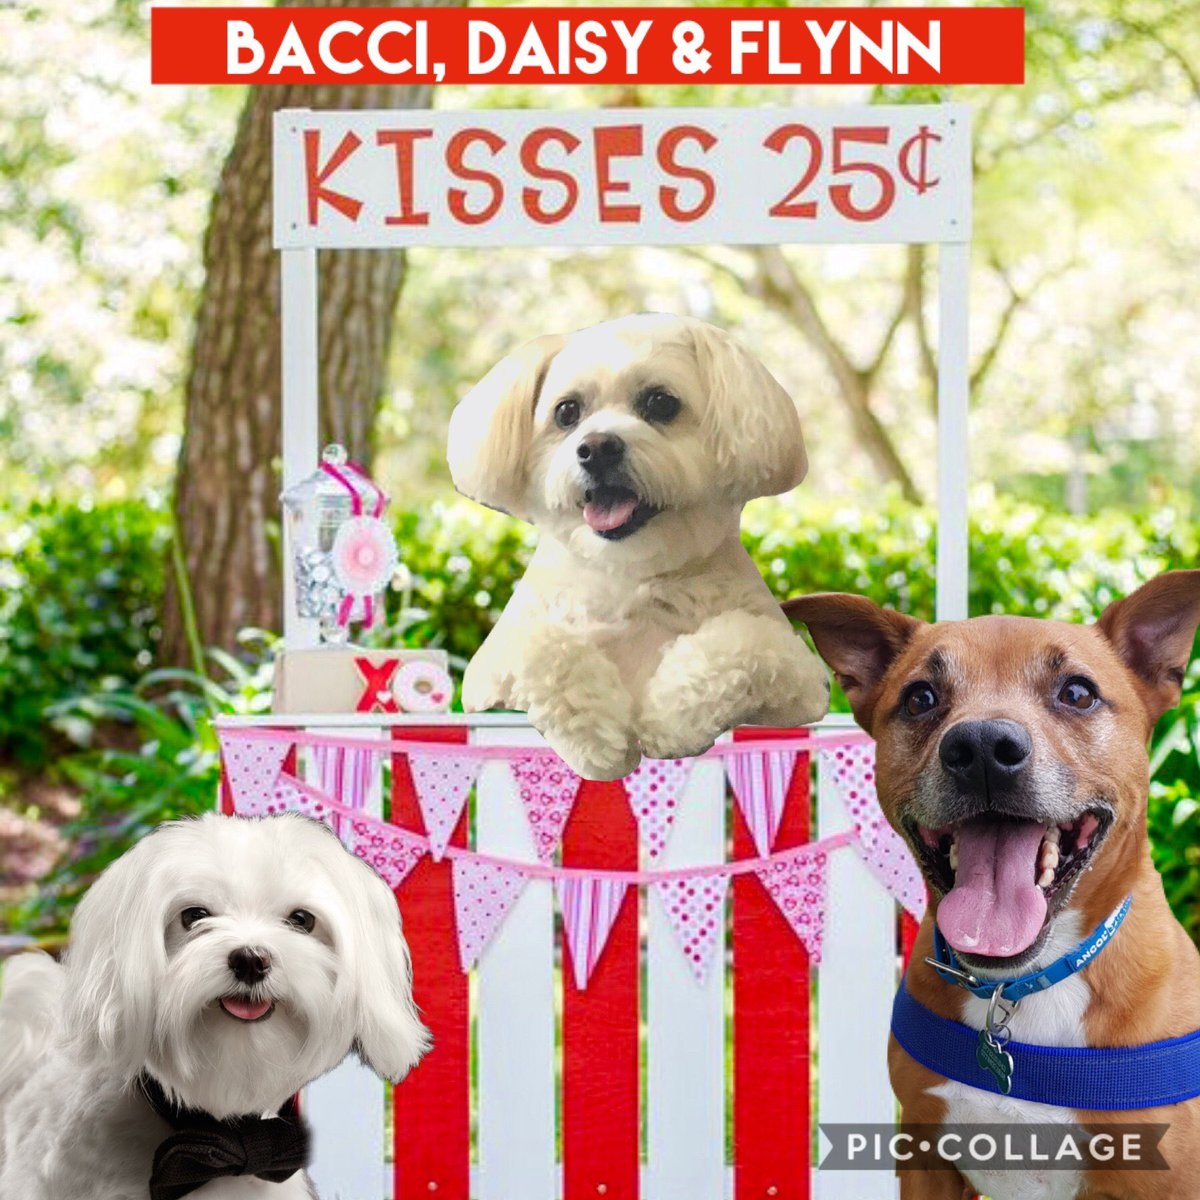 It's my party....so I figured that I would run the kissing booth!!  I'm a big flirt!!  #daisysparty #dogsoftwitter <br>http://pic.twitter.com/rGJHUI5907